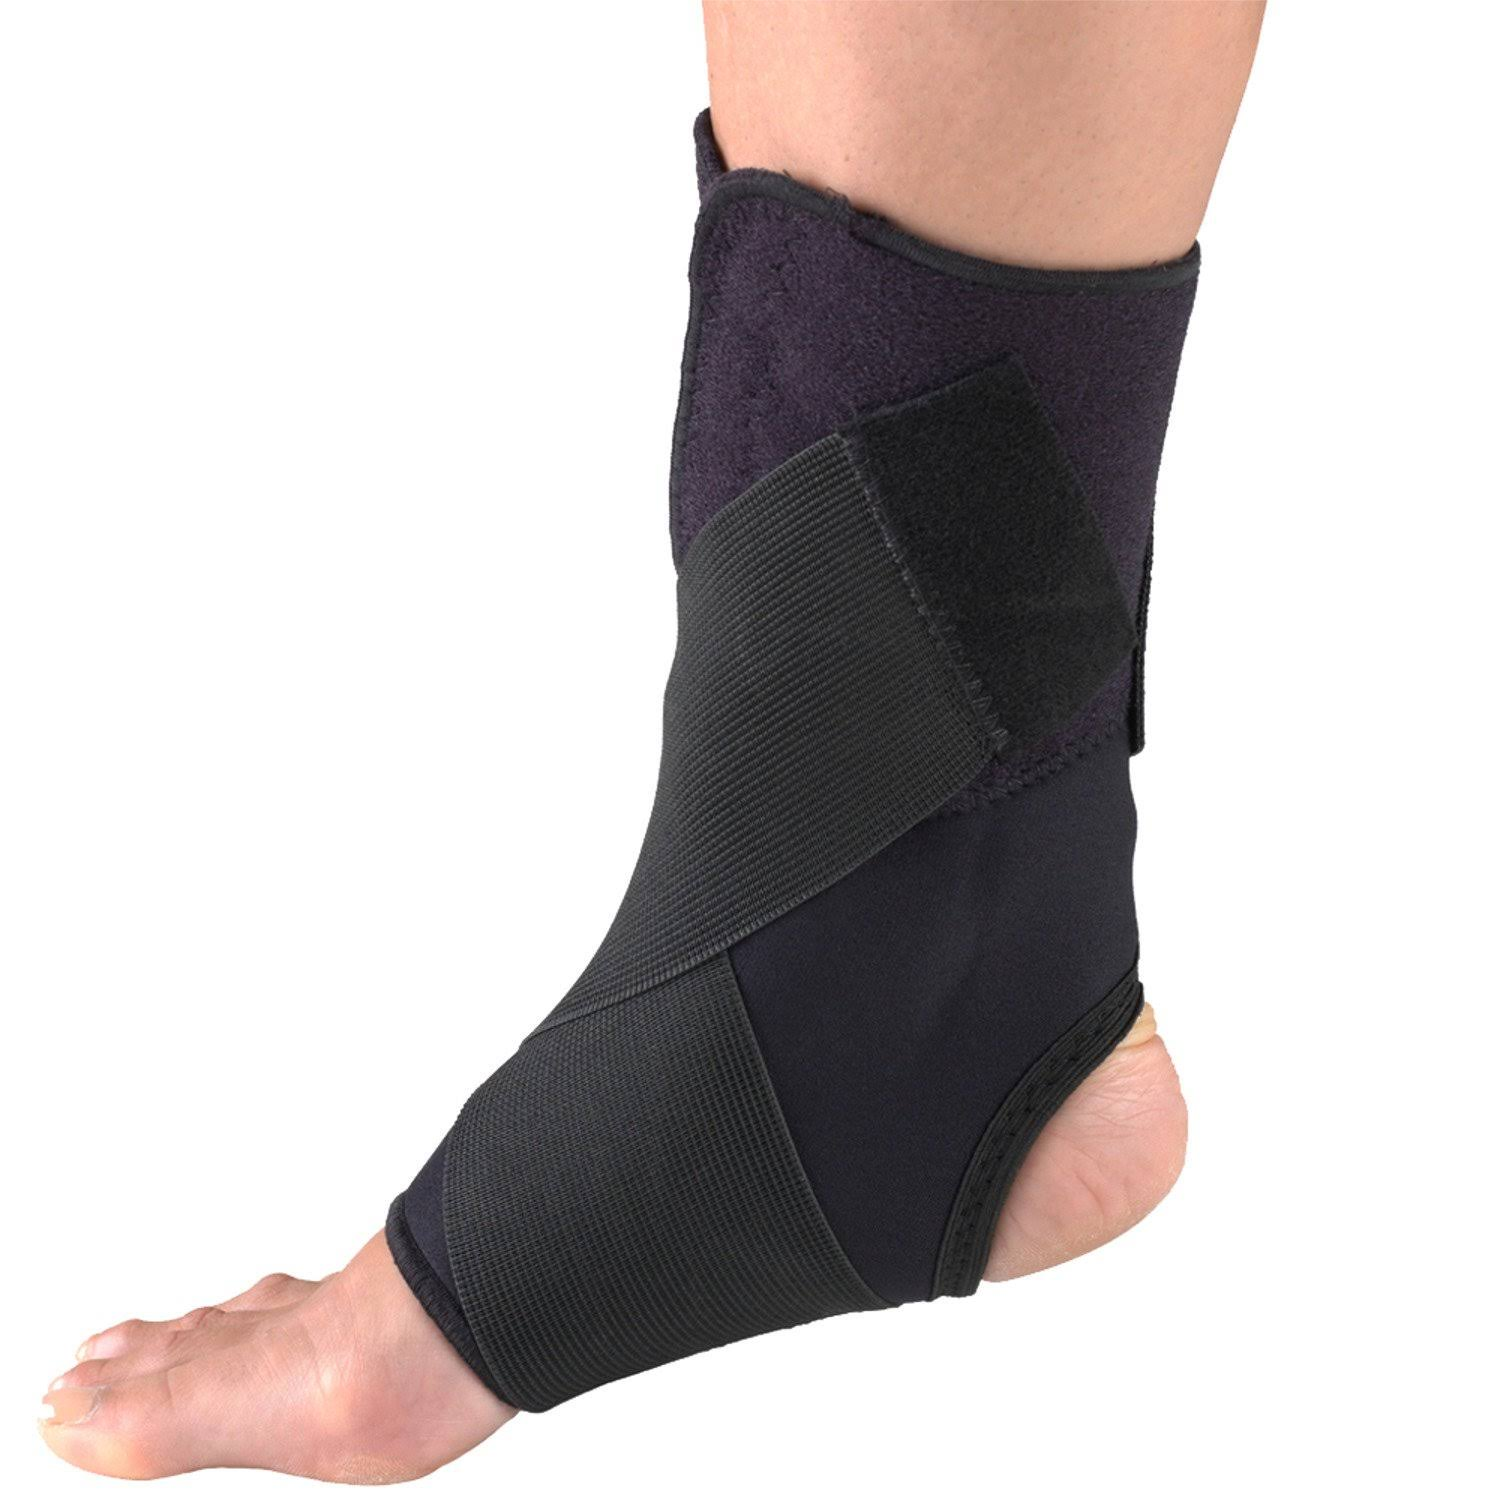 OTC Ankle Support with Wrap Around Strap